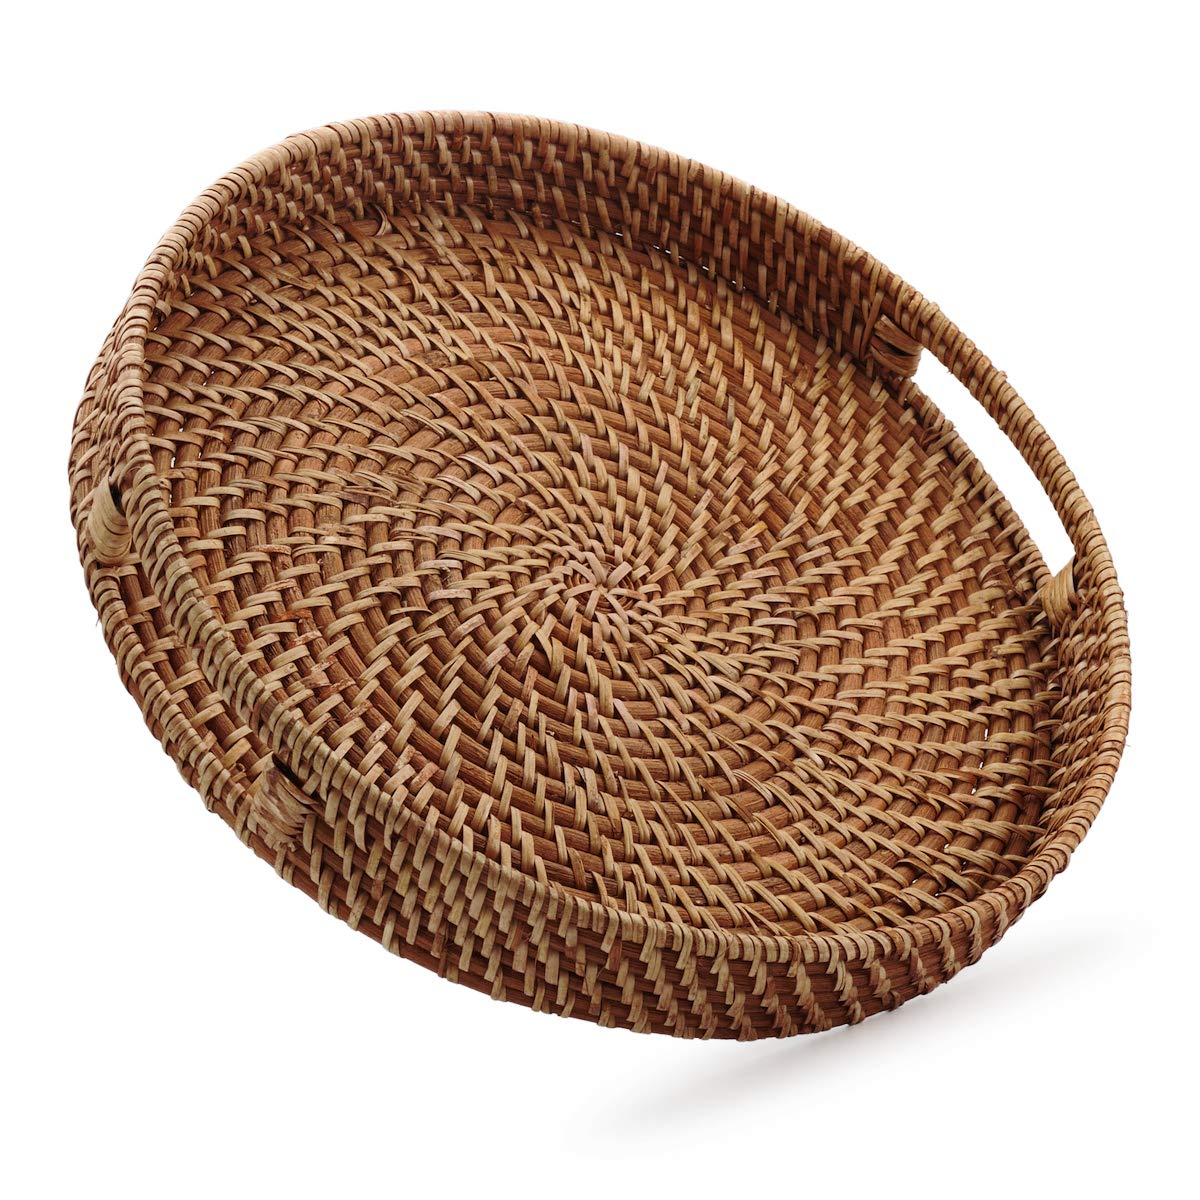 Round Rattan Woven Serving Tray with Handles for Breakfast, Drinks, Snack for Coffee Table, Home Decorative (16.9 inch, Honey Brown) by iHogar